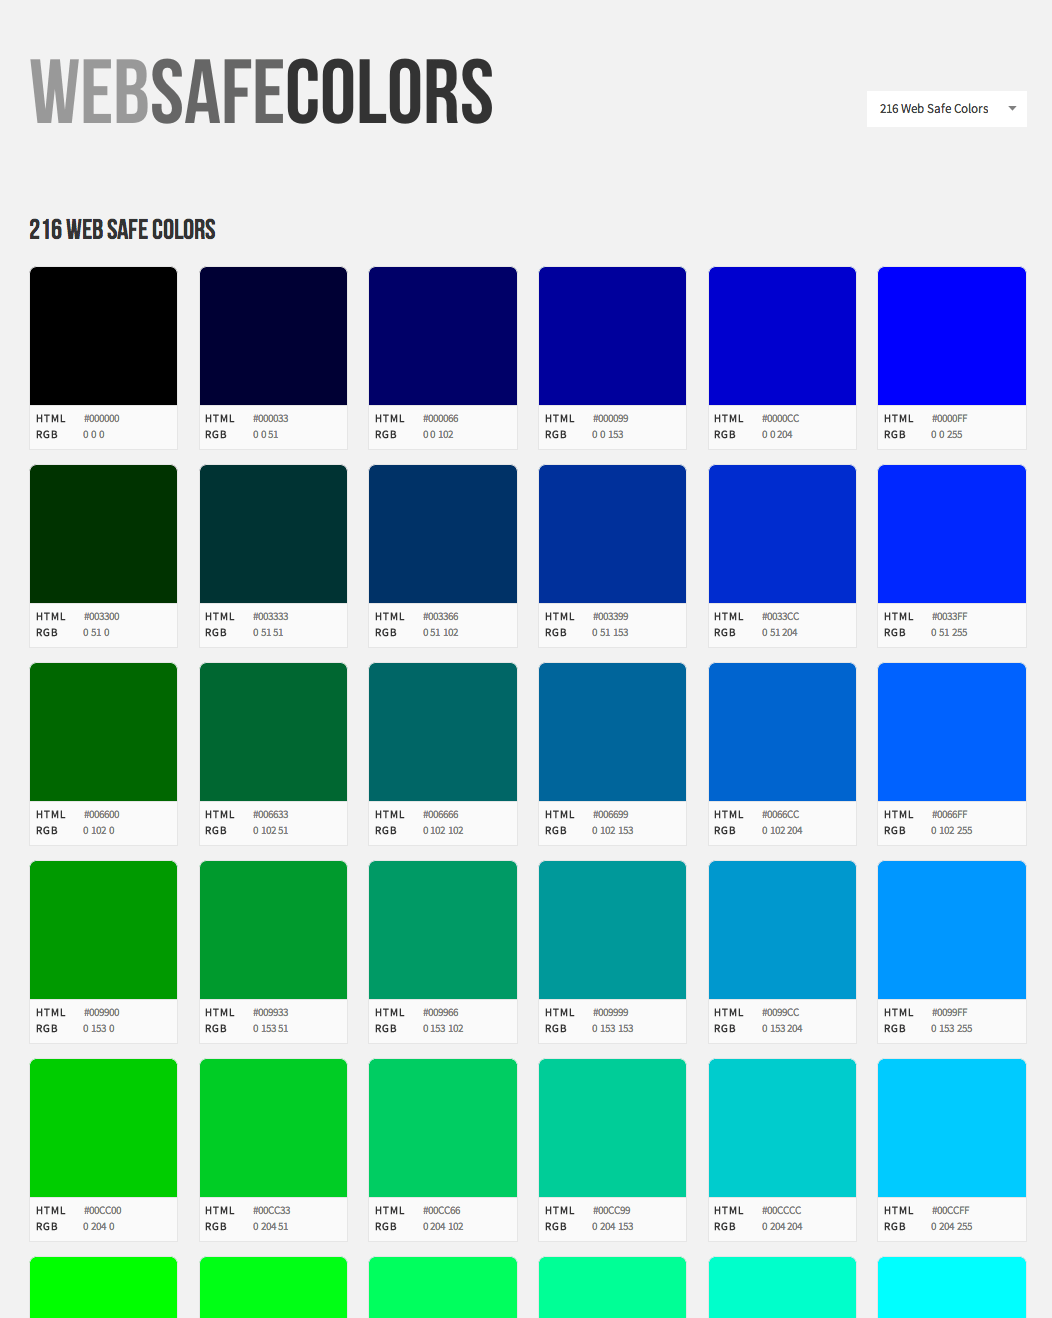 Web safe colors visual list of all web colors with hex codes